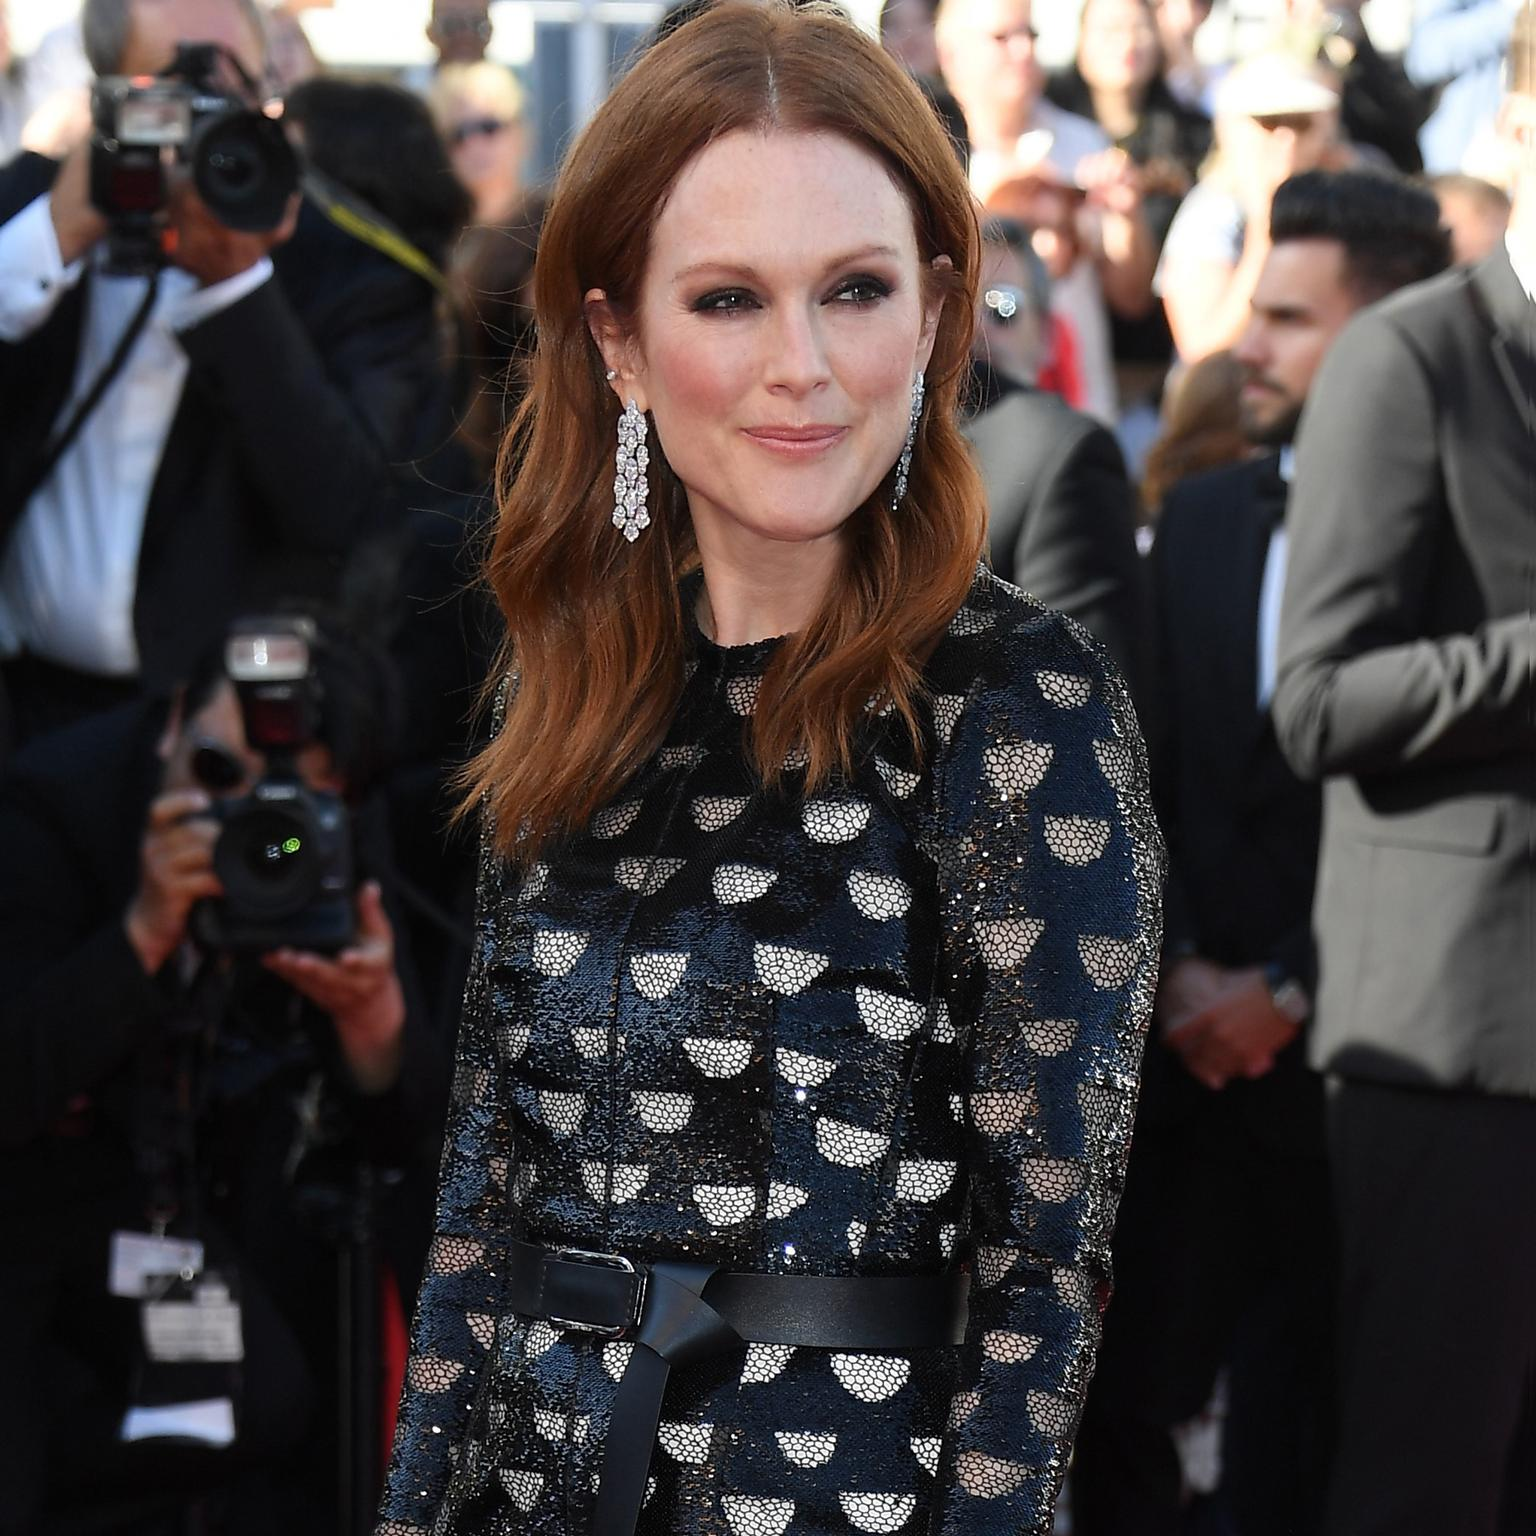 Julianne Moore Chopard earrings Cannes 2017